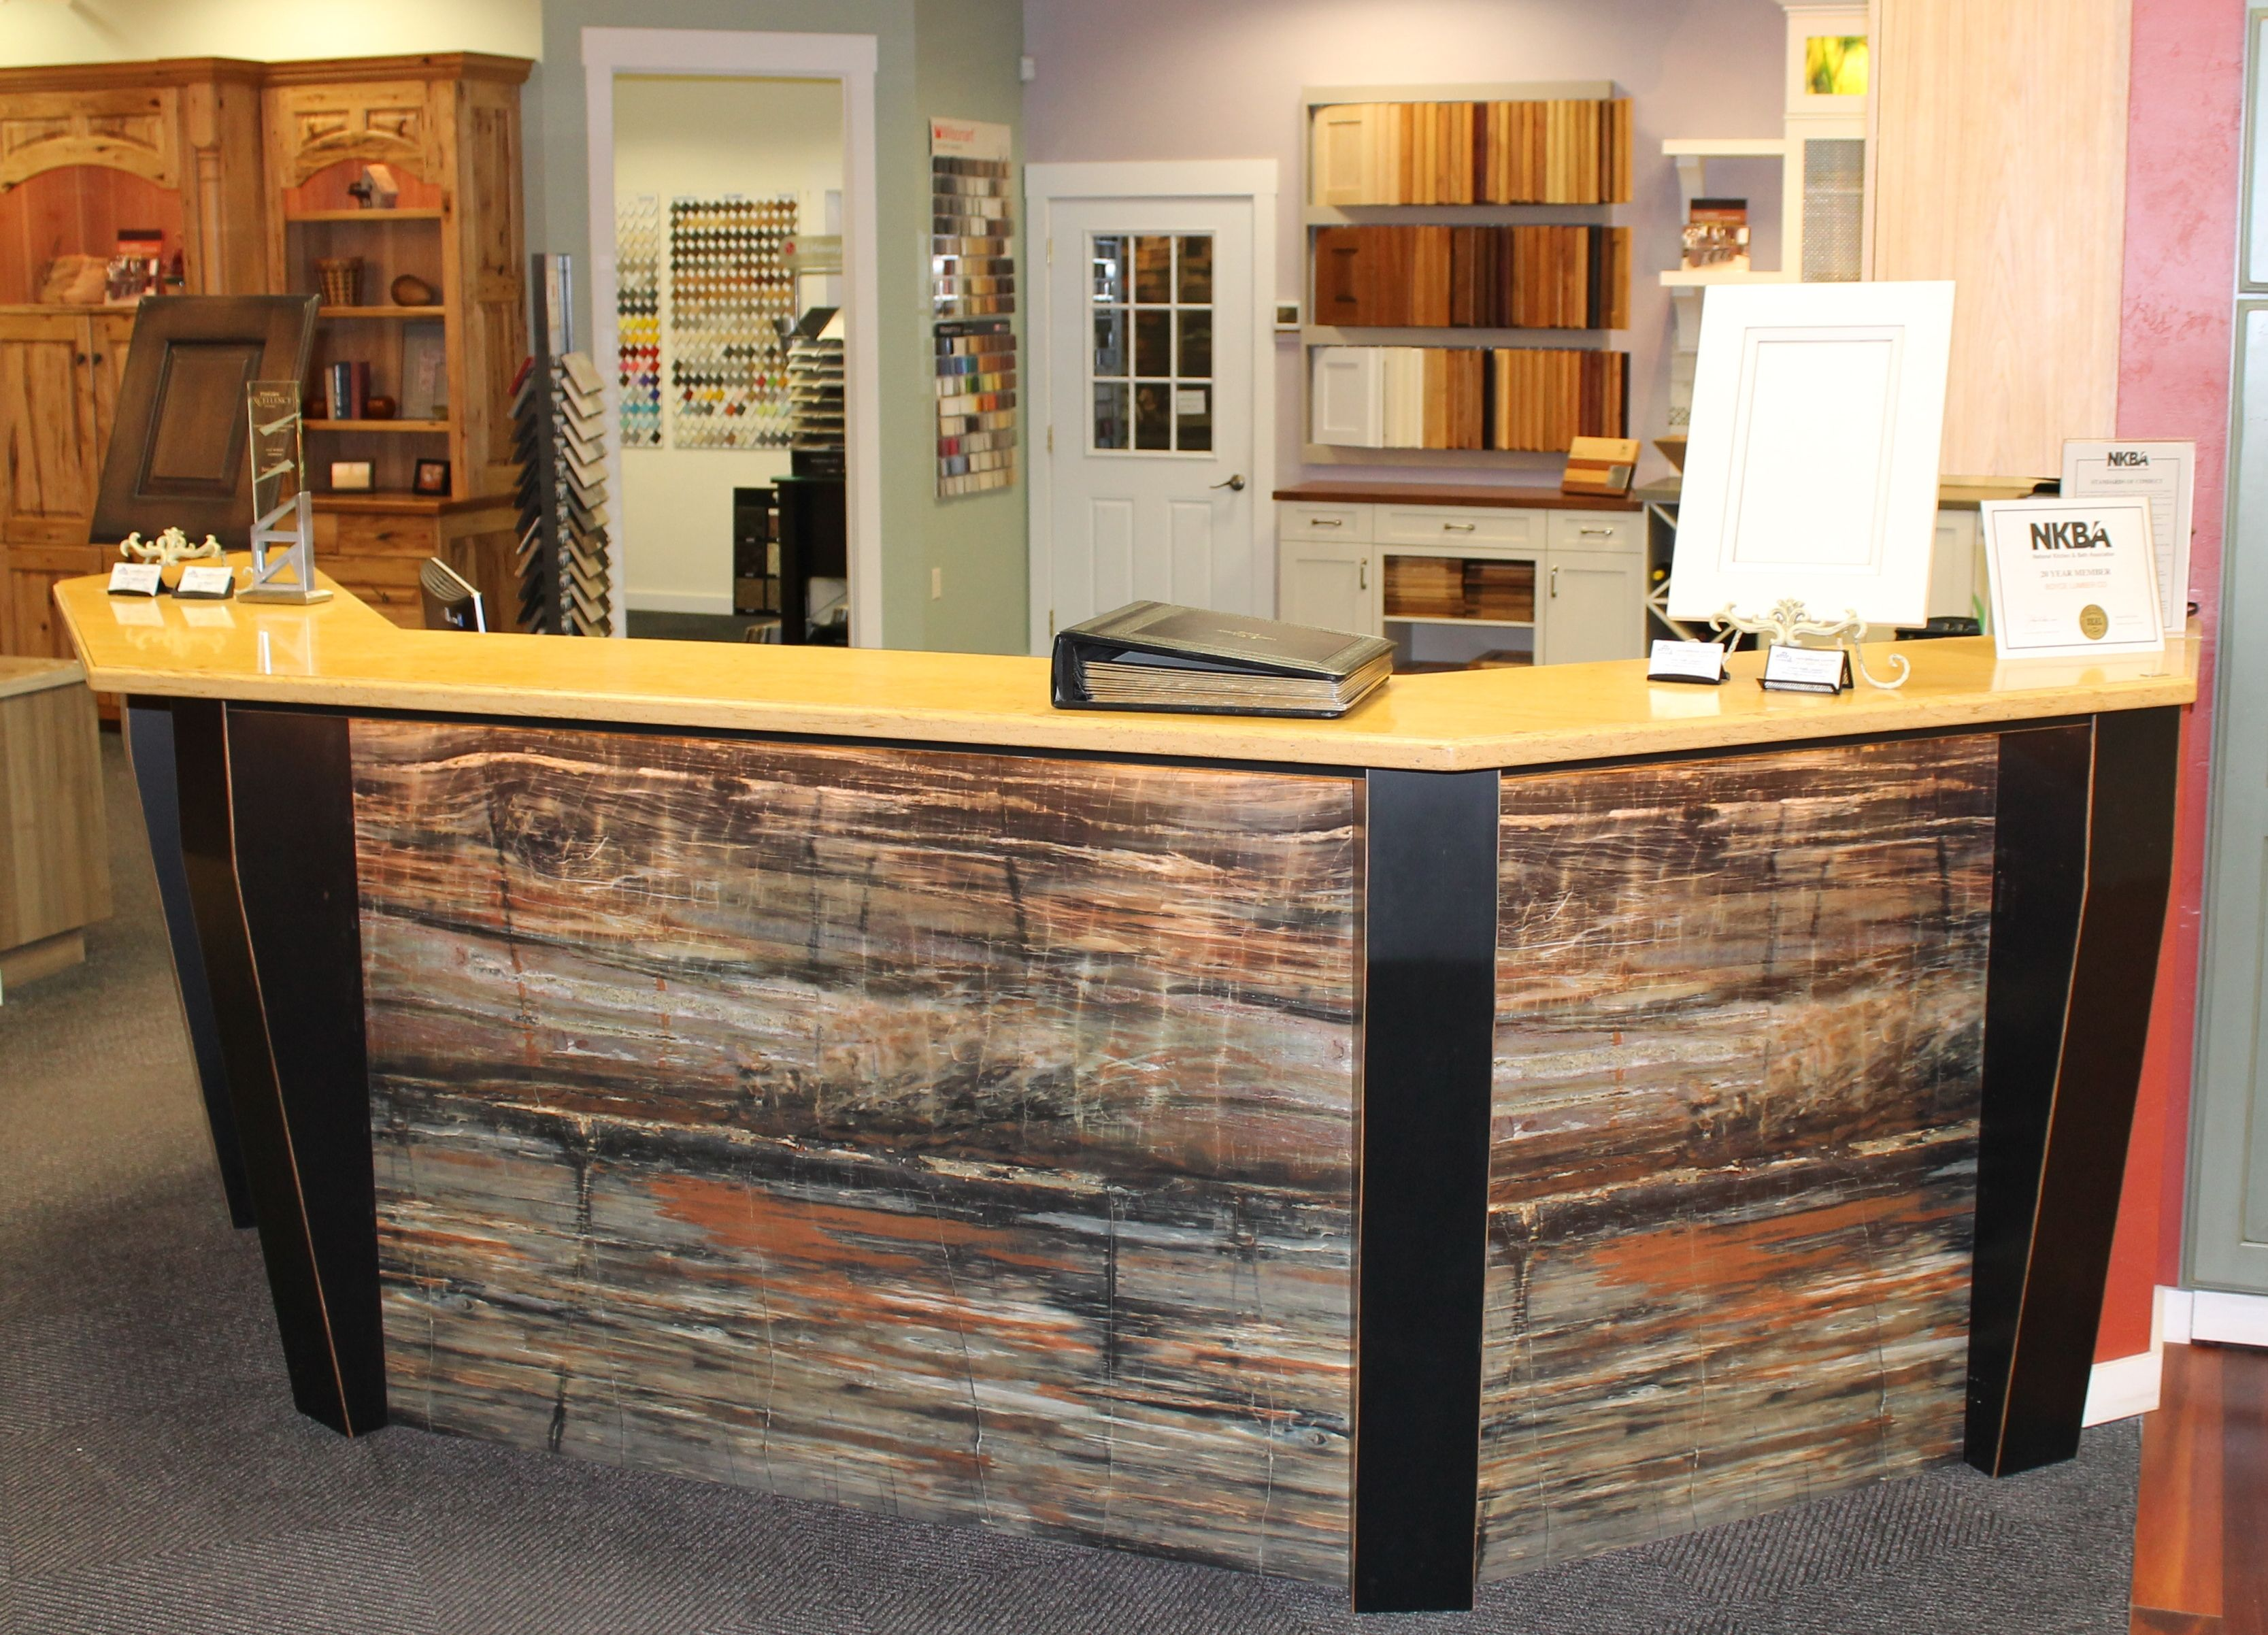 Formica desk front - Petrified Wood, Corian Countertop ...